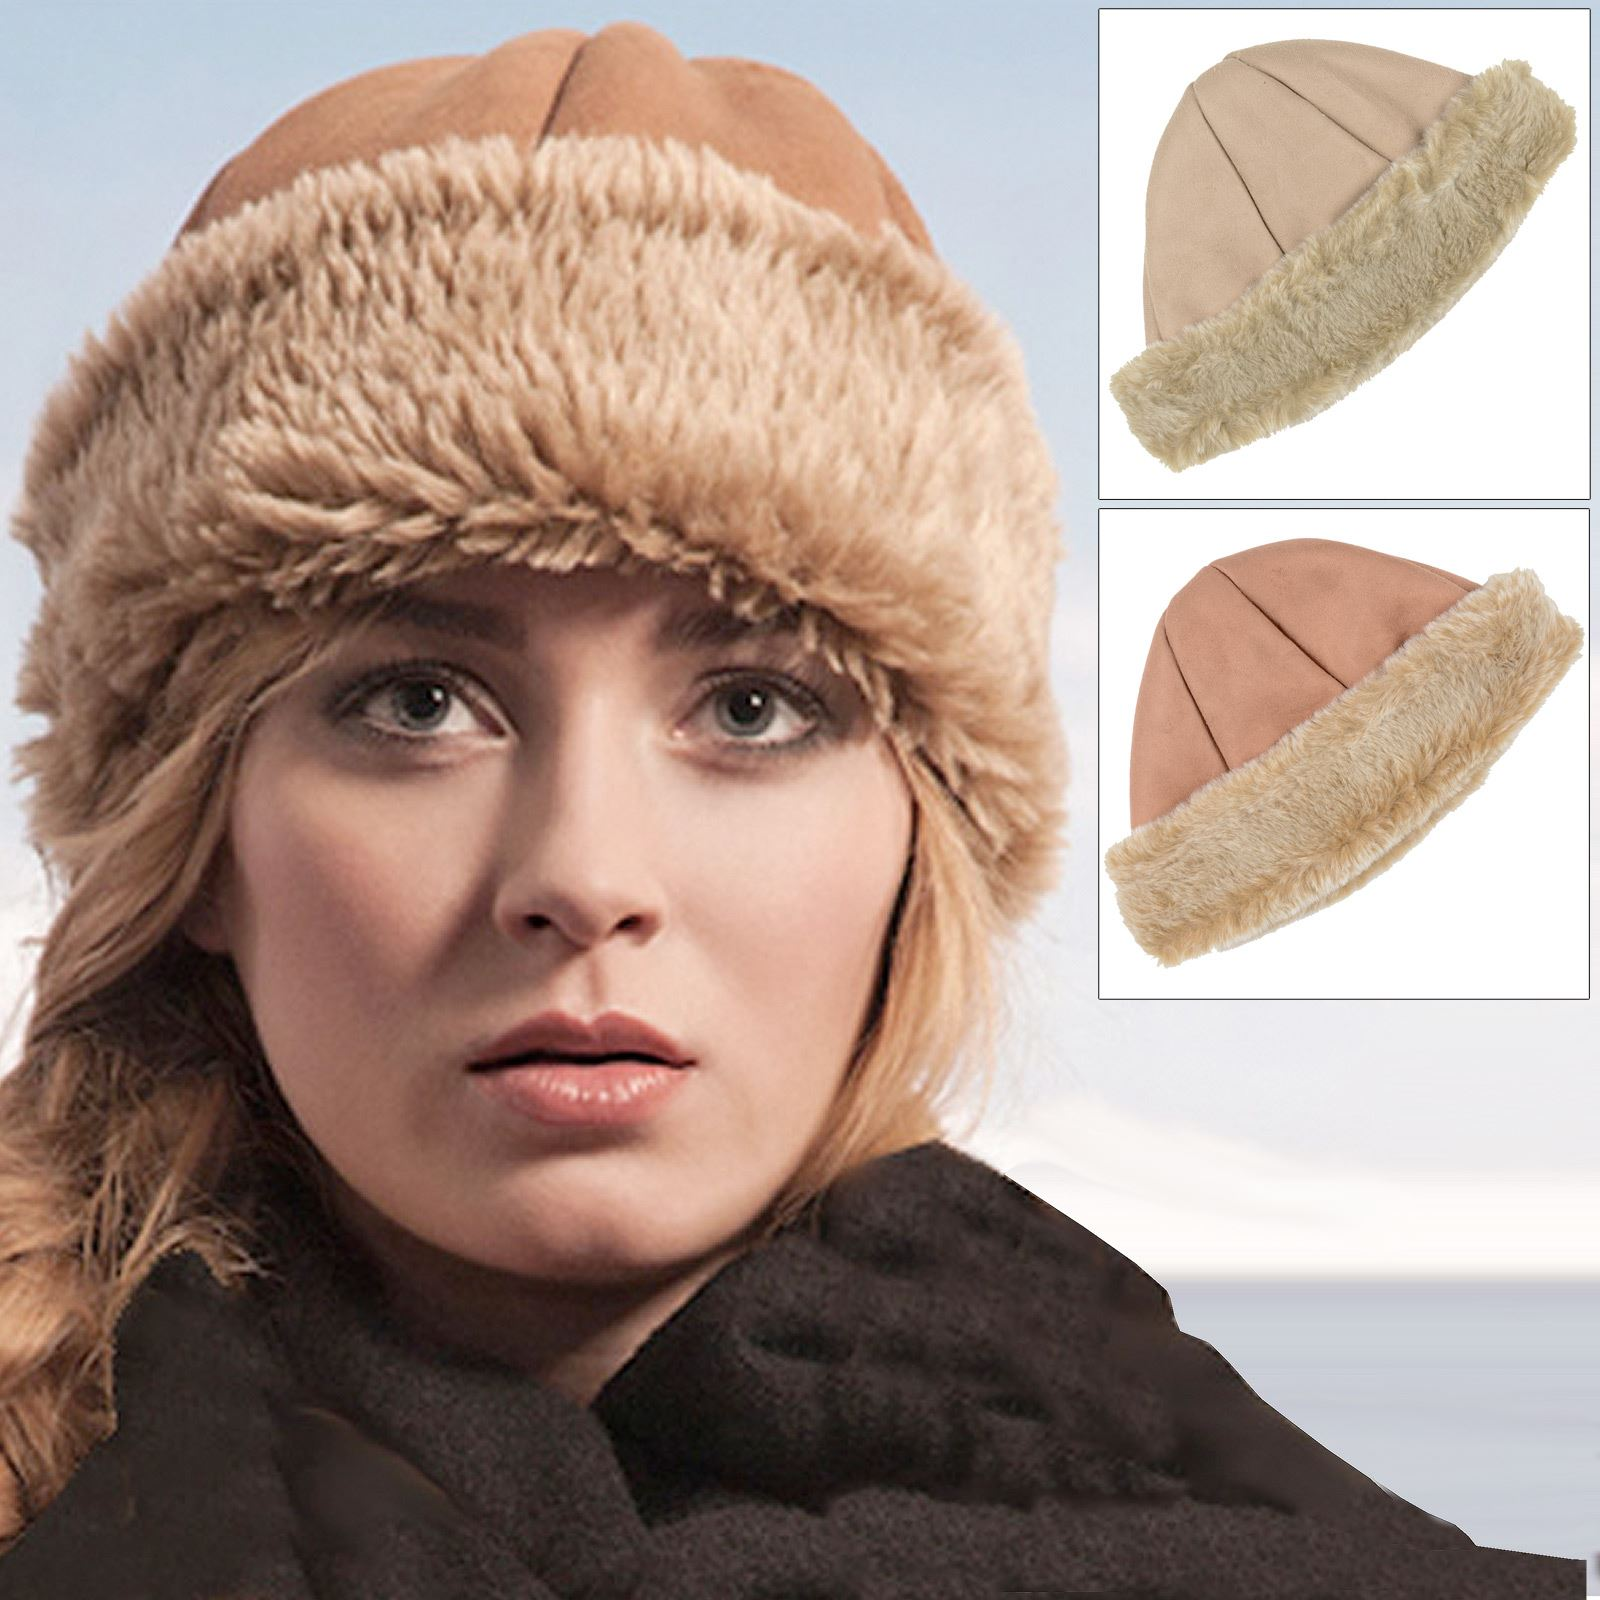 Details about New Pia Rossini Ladies Cossack Hat Faux Sheepskin   Suede    Fur Camel Or Tan 2589d1c1190